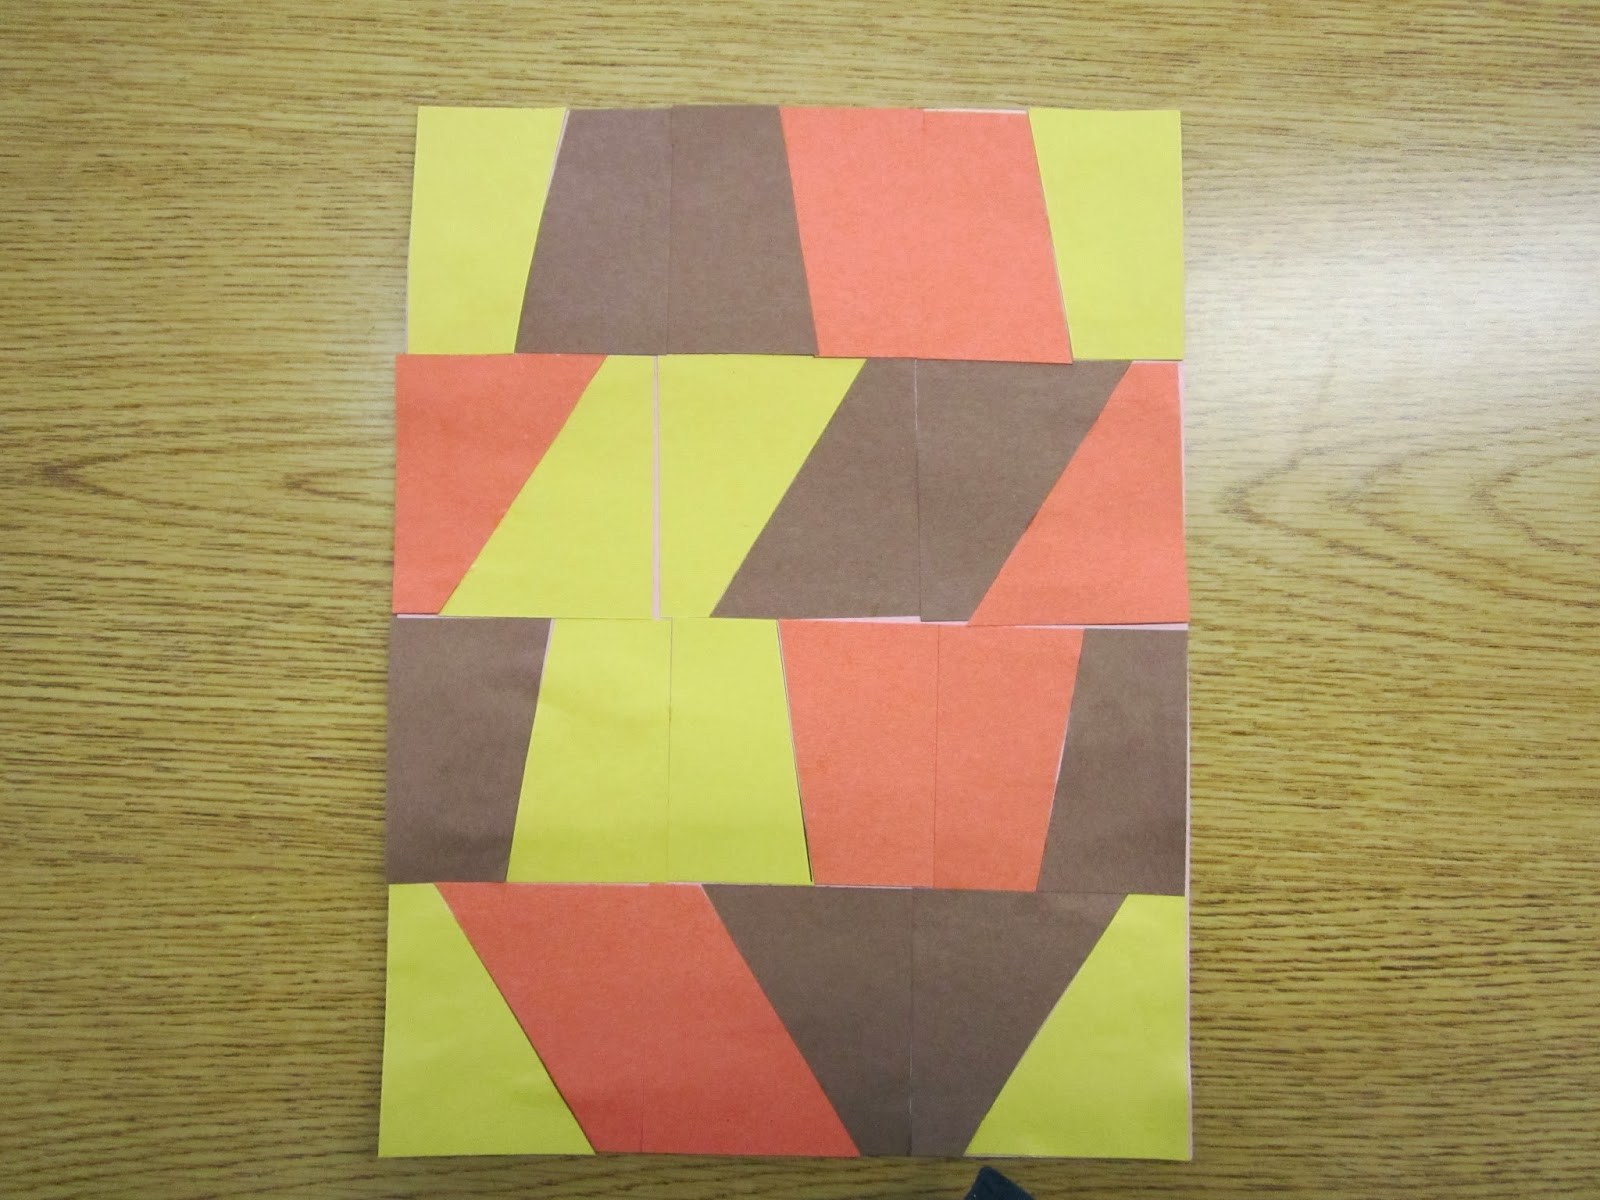 Classroom Freebies Too Classifying Quadrilaterals With An